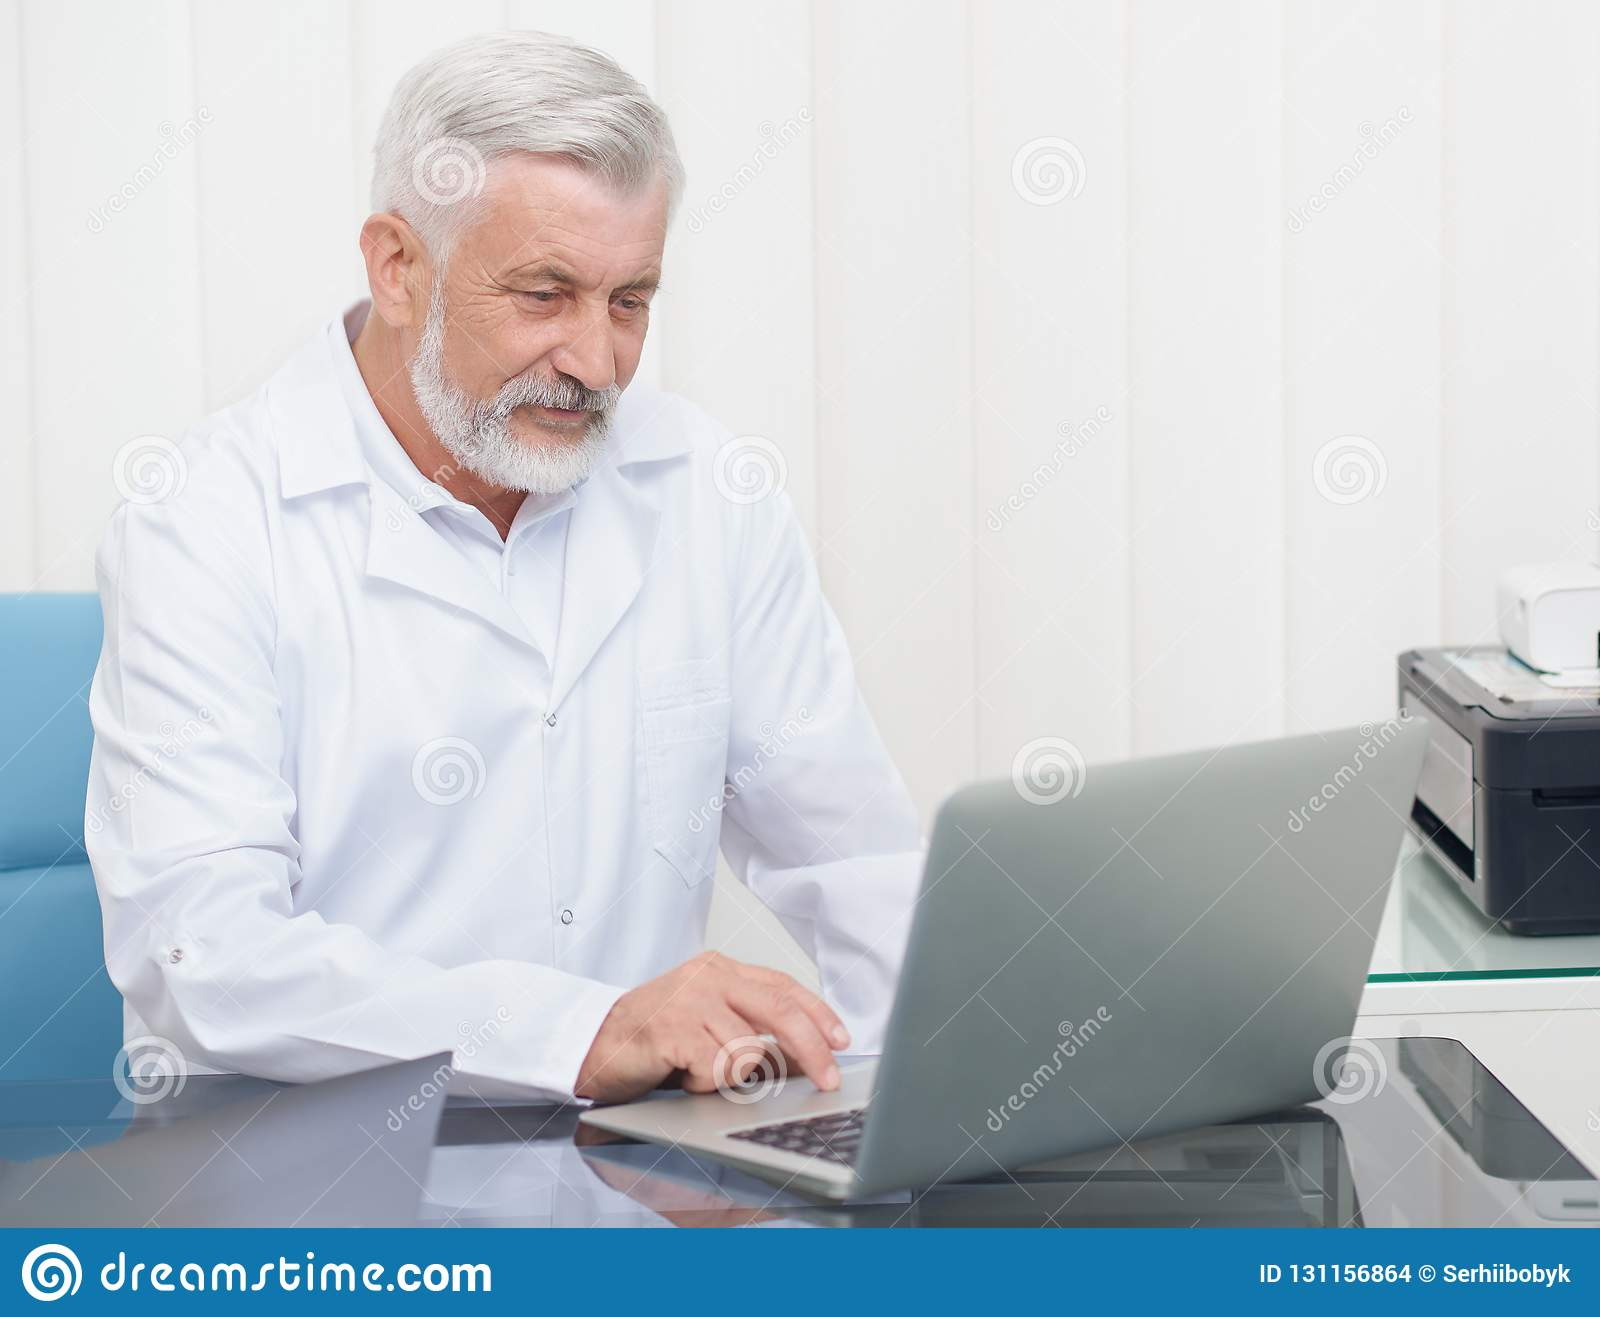 Senior doctor wearing in white uniform working with laptop.